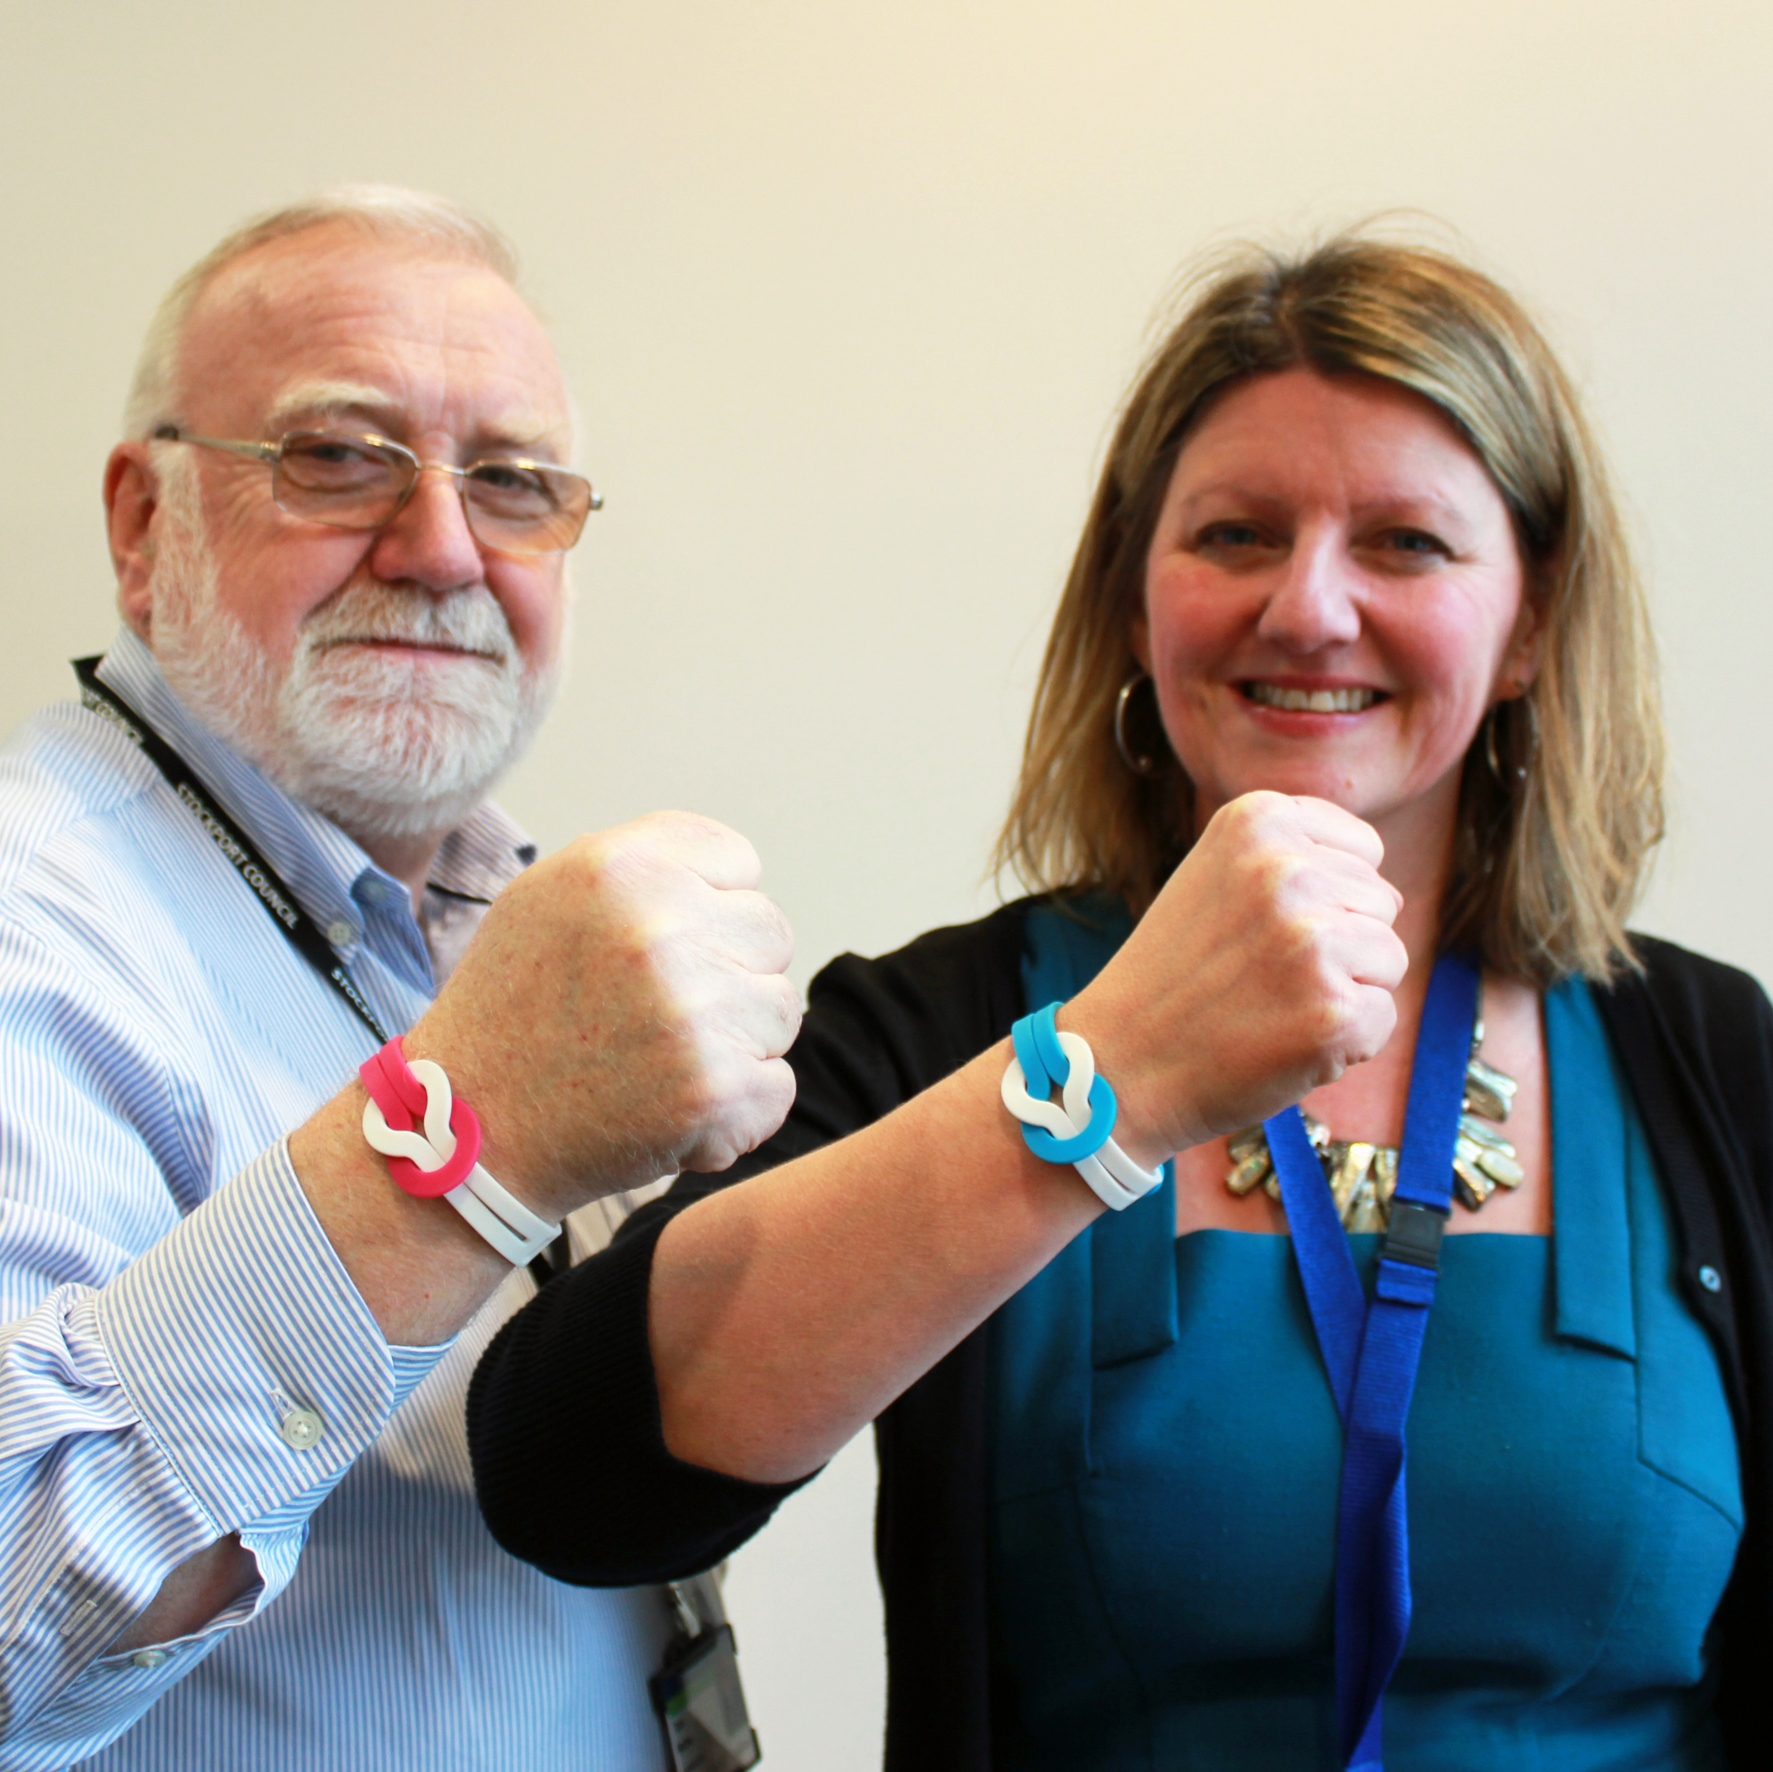 Band together to help beat cancer